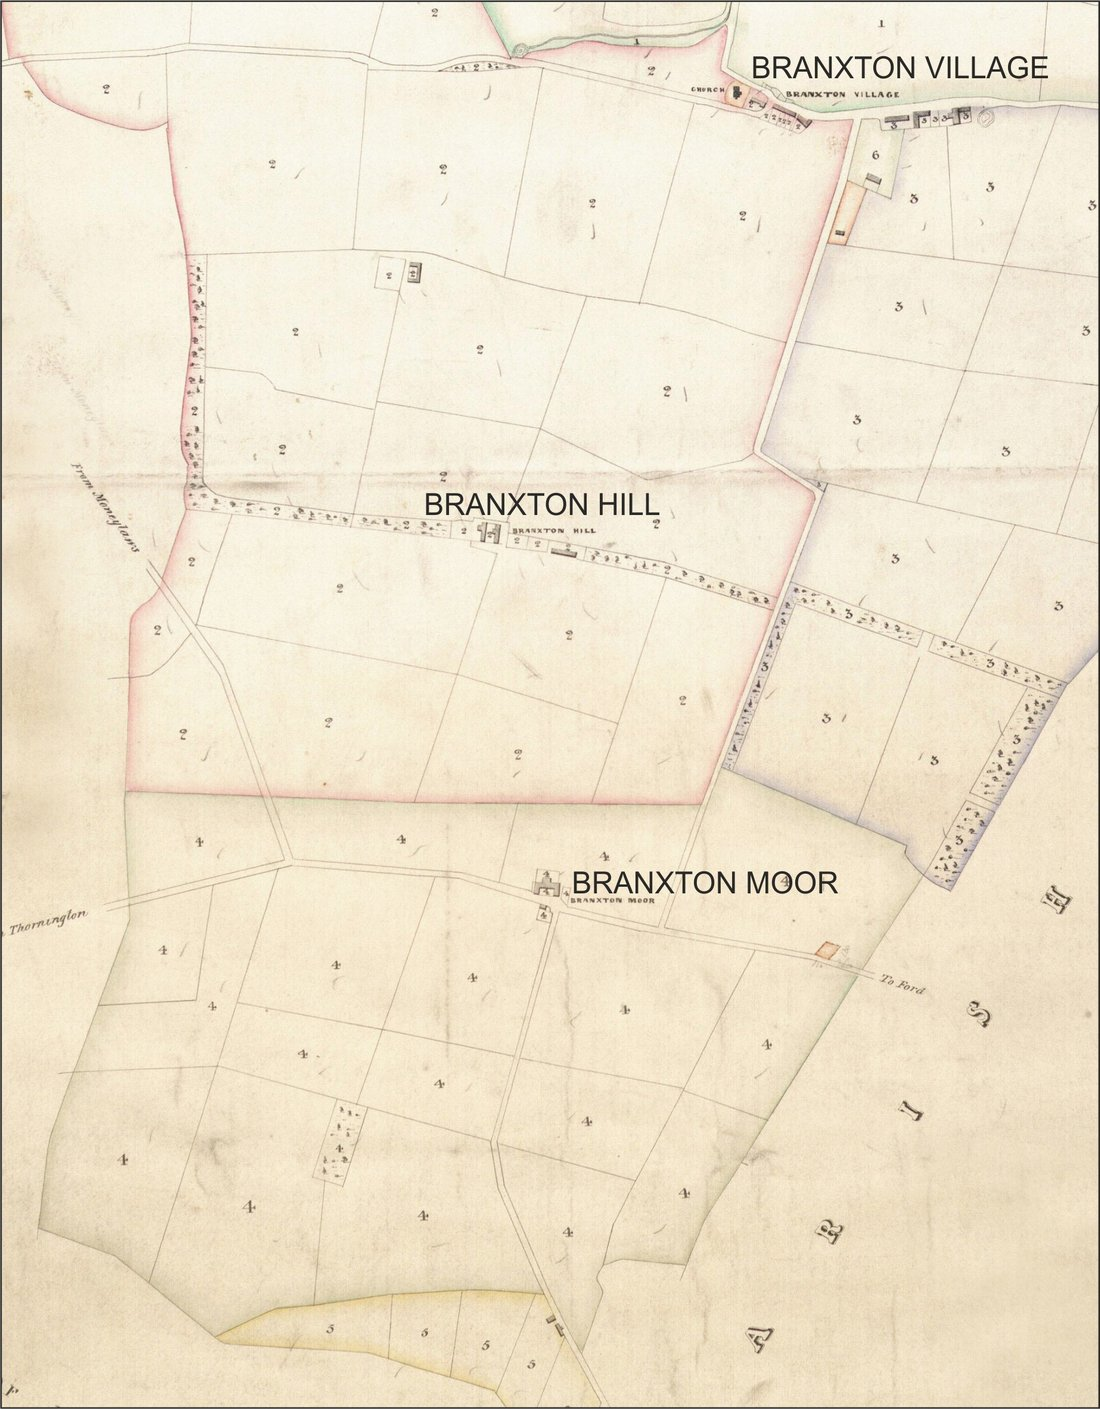 34 Illus 01 Part of the 1842 Branxton Tithe plan